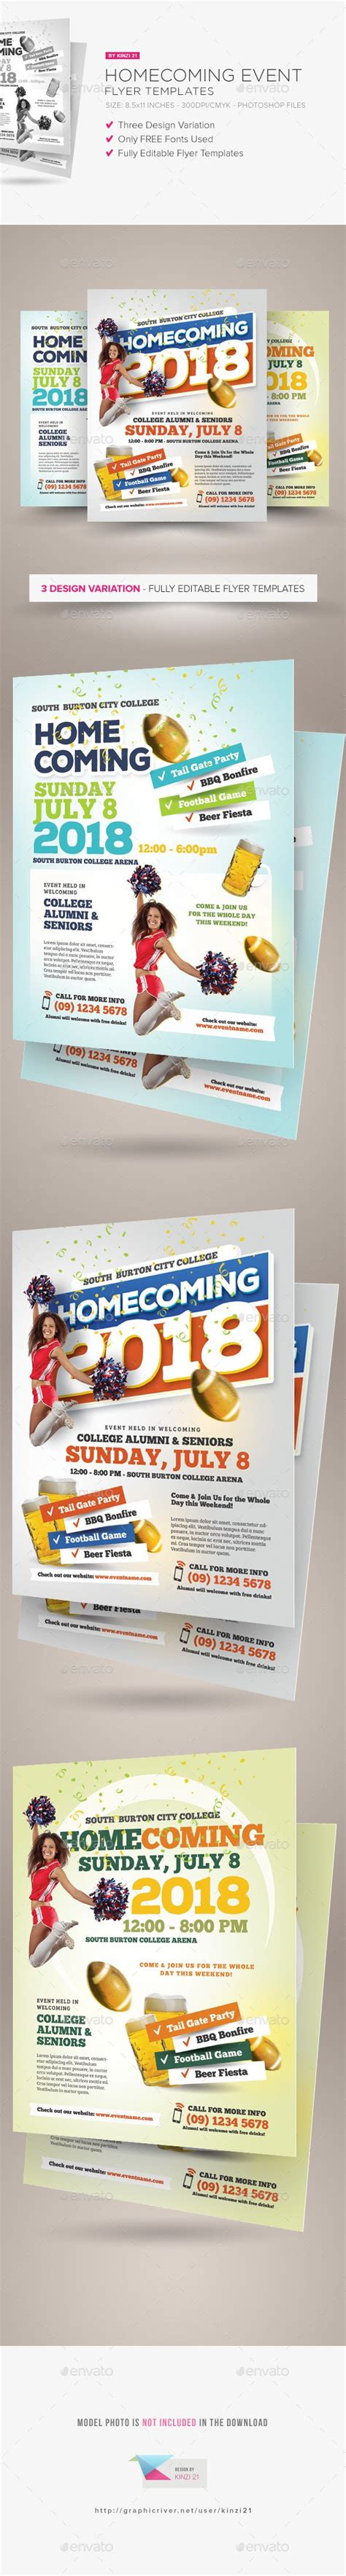 The 25 Best Alumni Homecoming Ideas On Pinterest Big Shoulder Outfits Blonde Hair Gone Wrong Homecoming Flyer Template